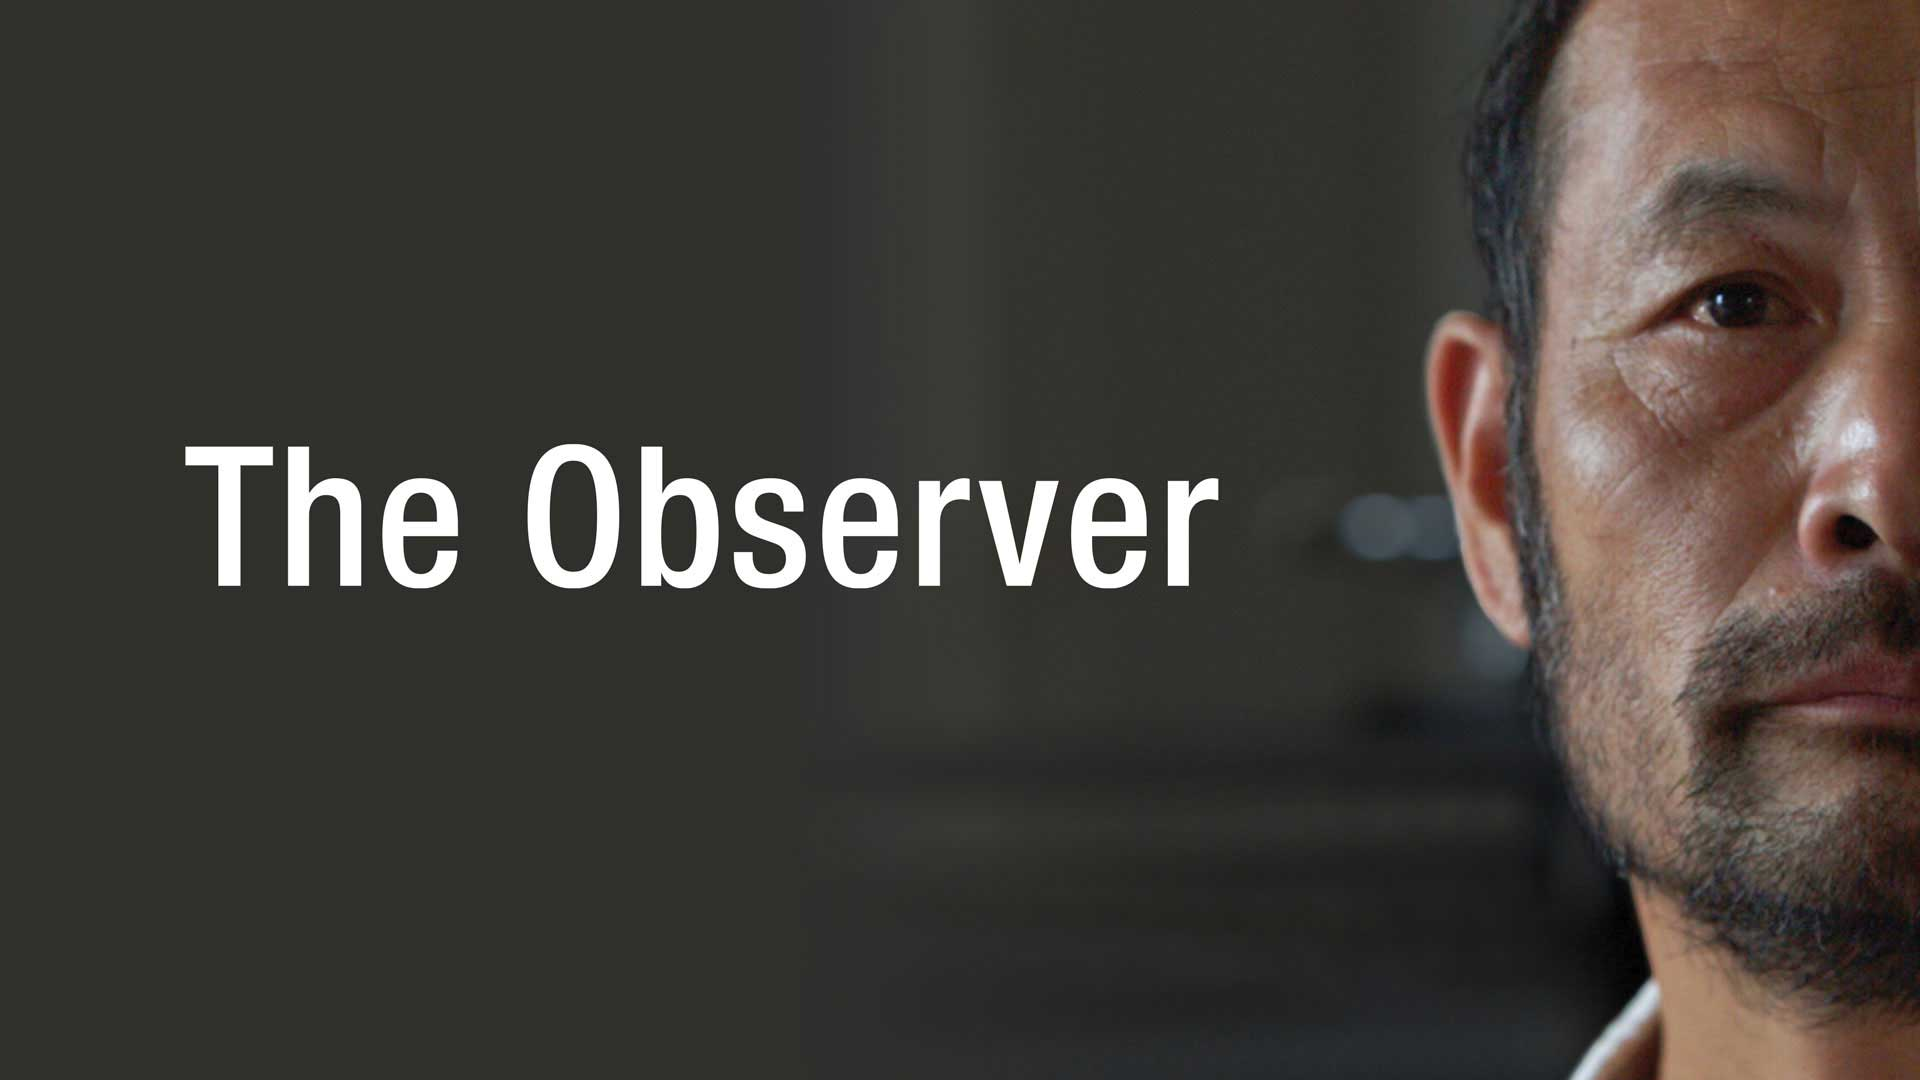 The Observer - image